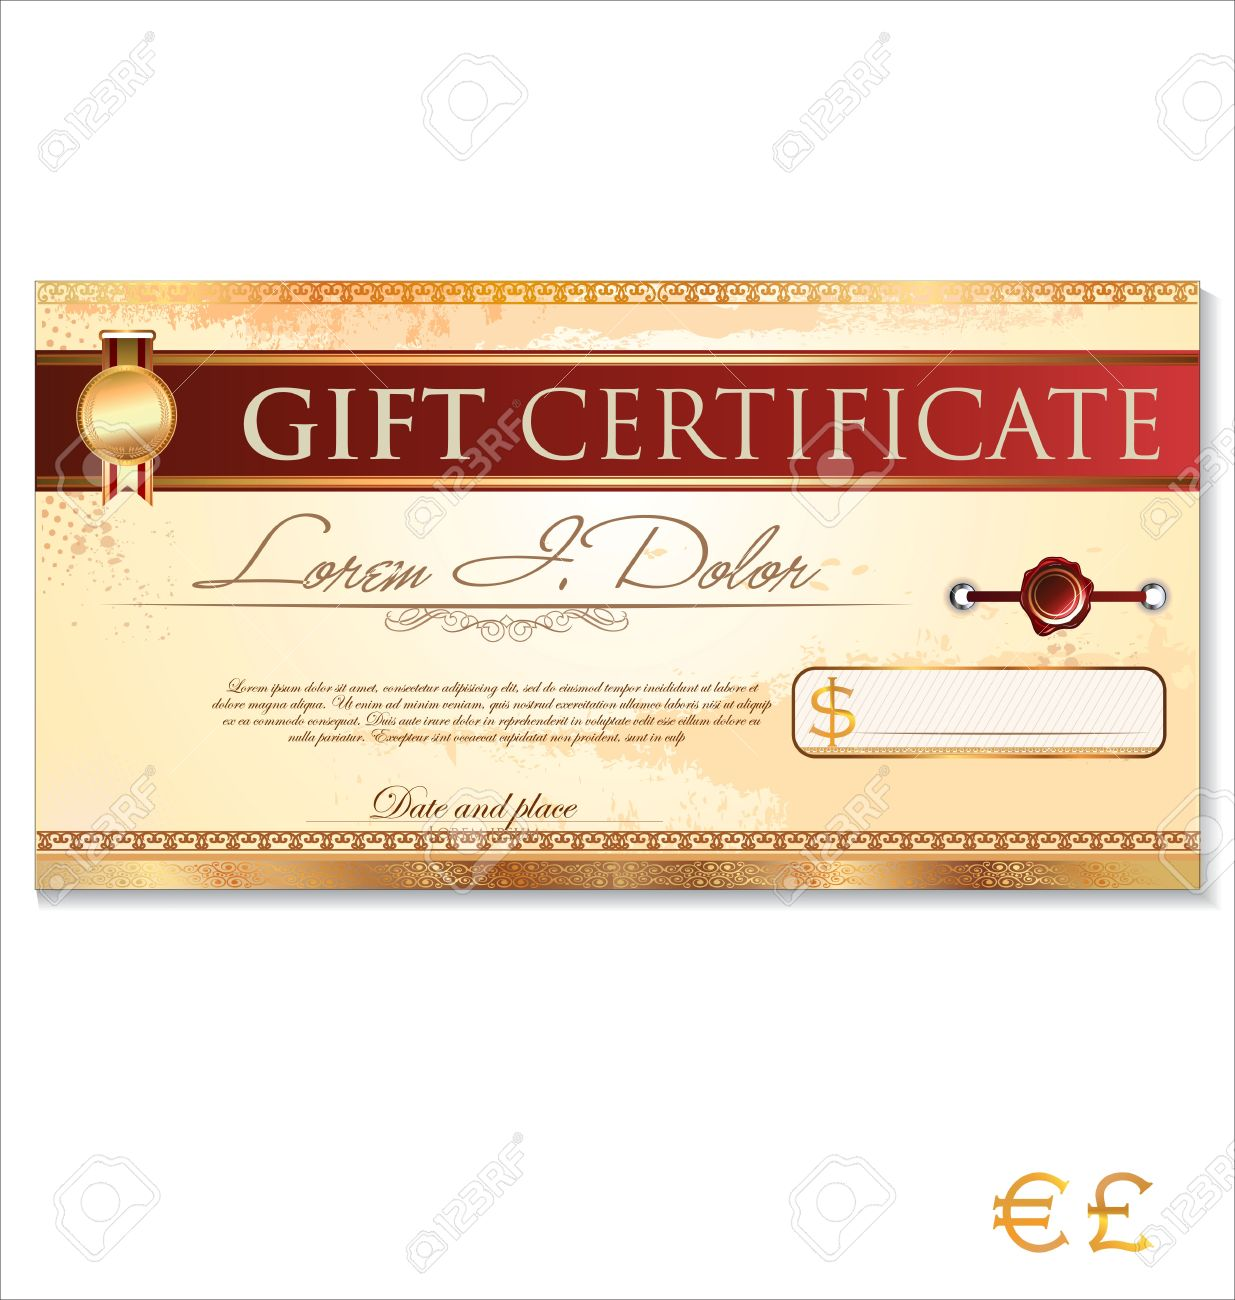 gift certificate template stock vector illustration and gift certificate template certificate template illustration